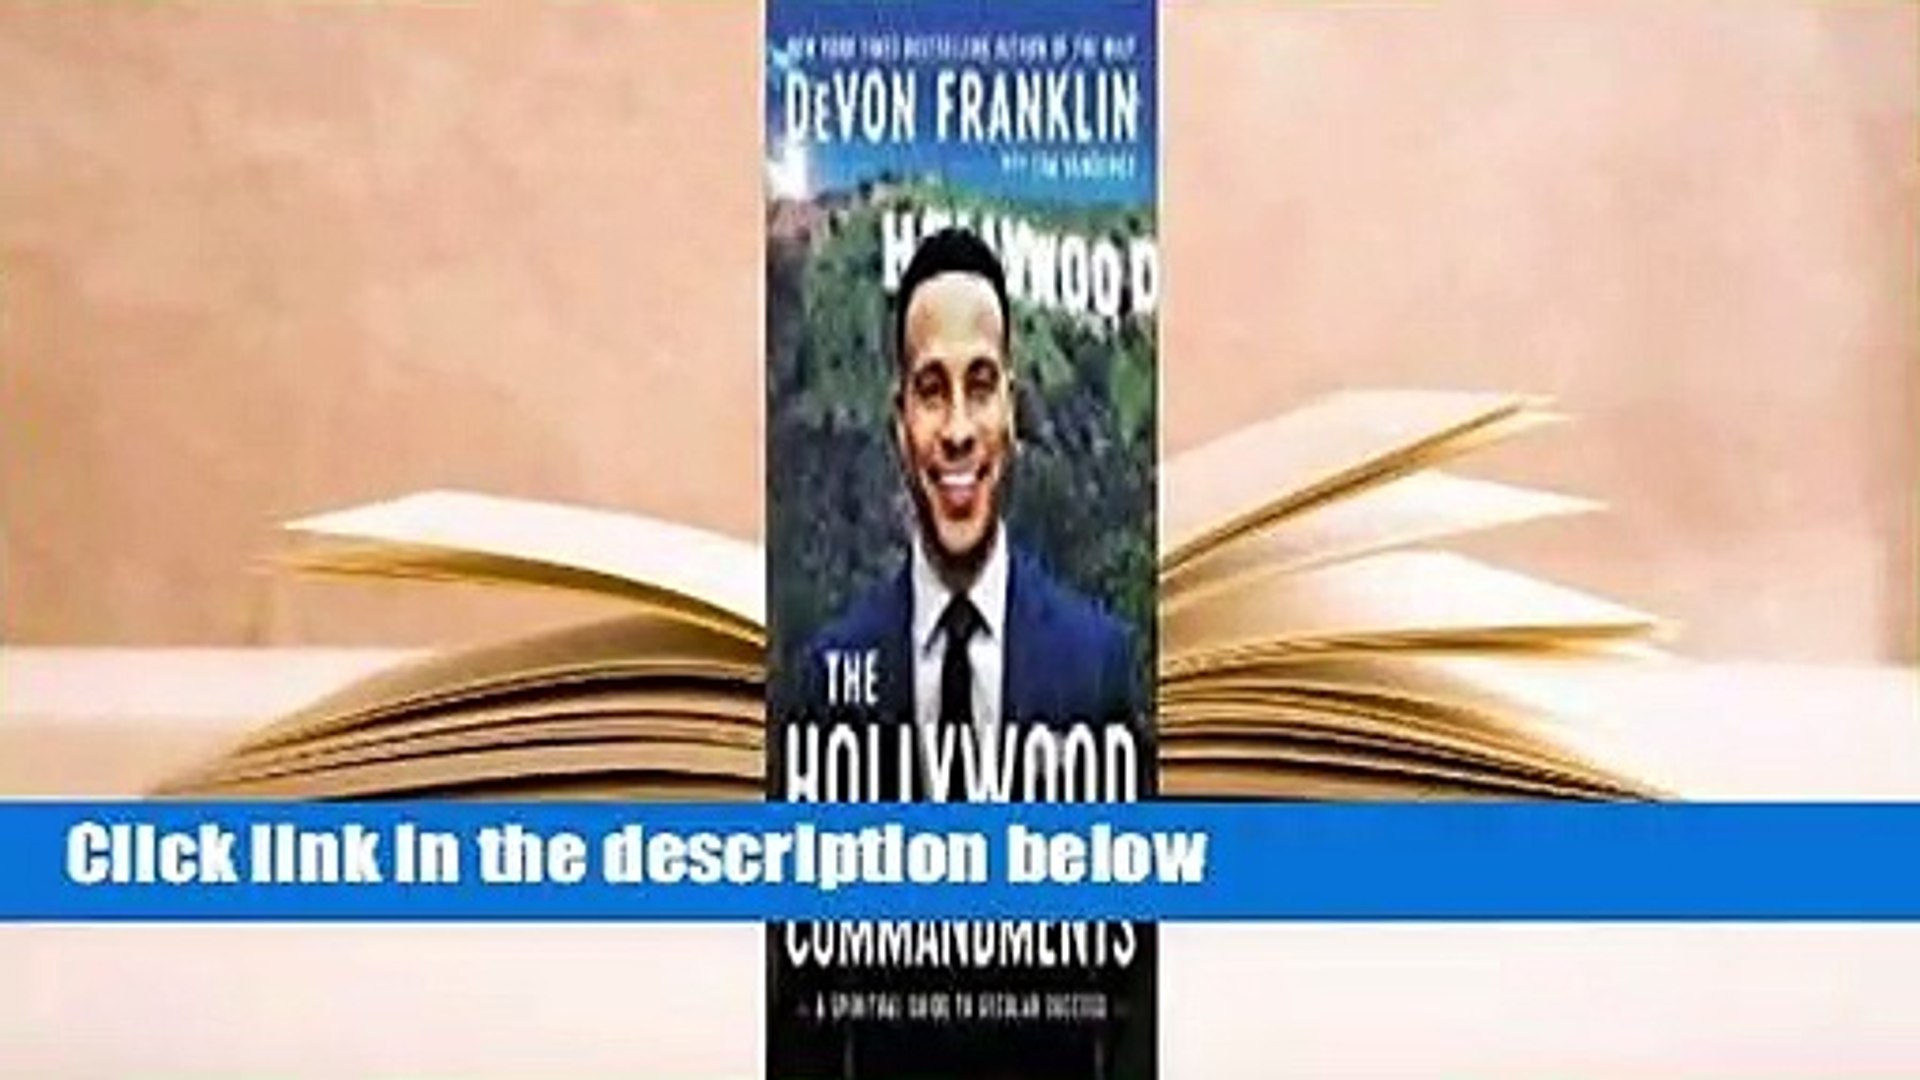 About For Books  The Hollywood Commandments: A Spiritual Guide to Secular Success  Review